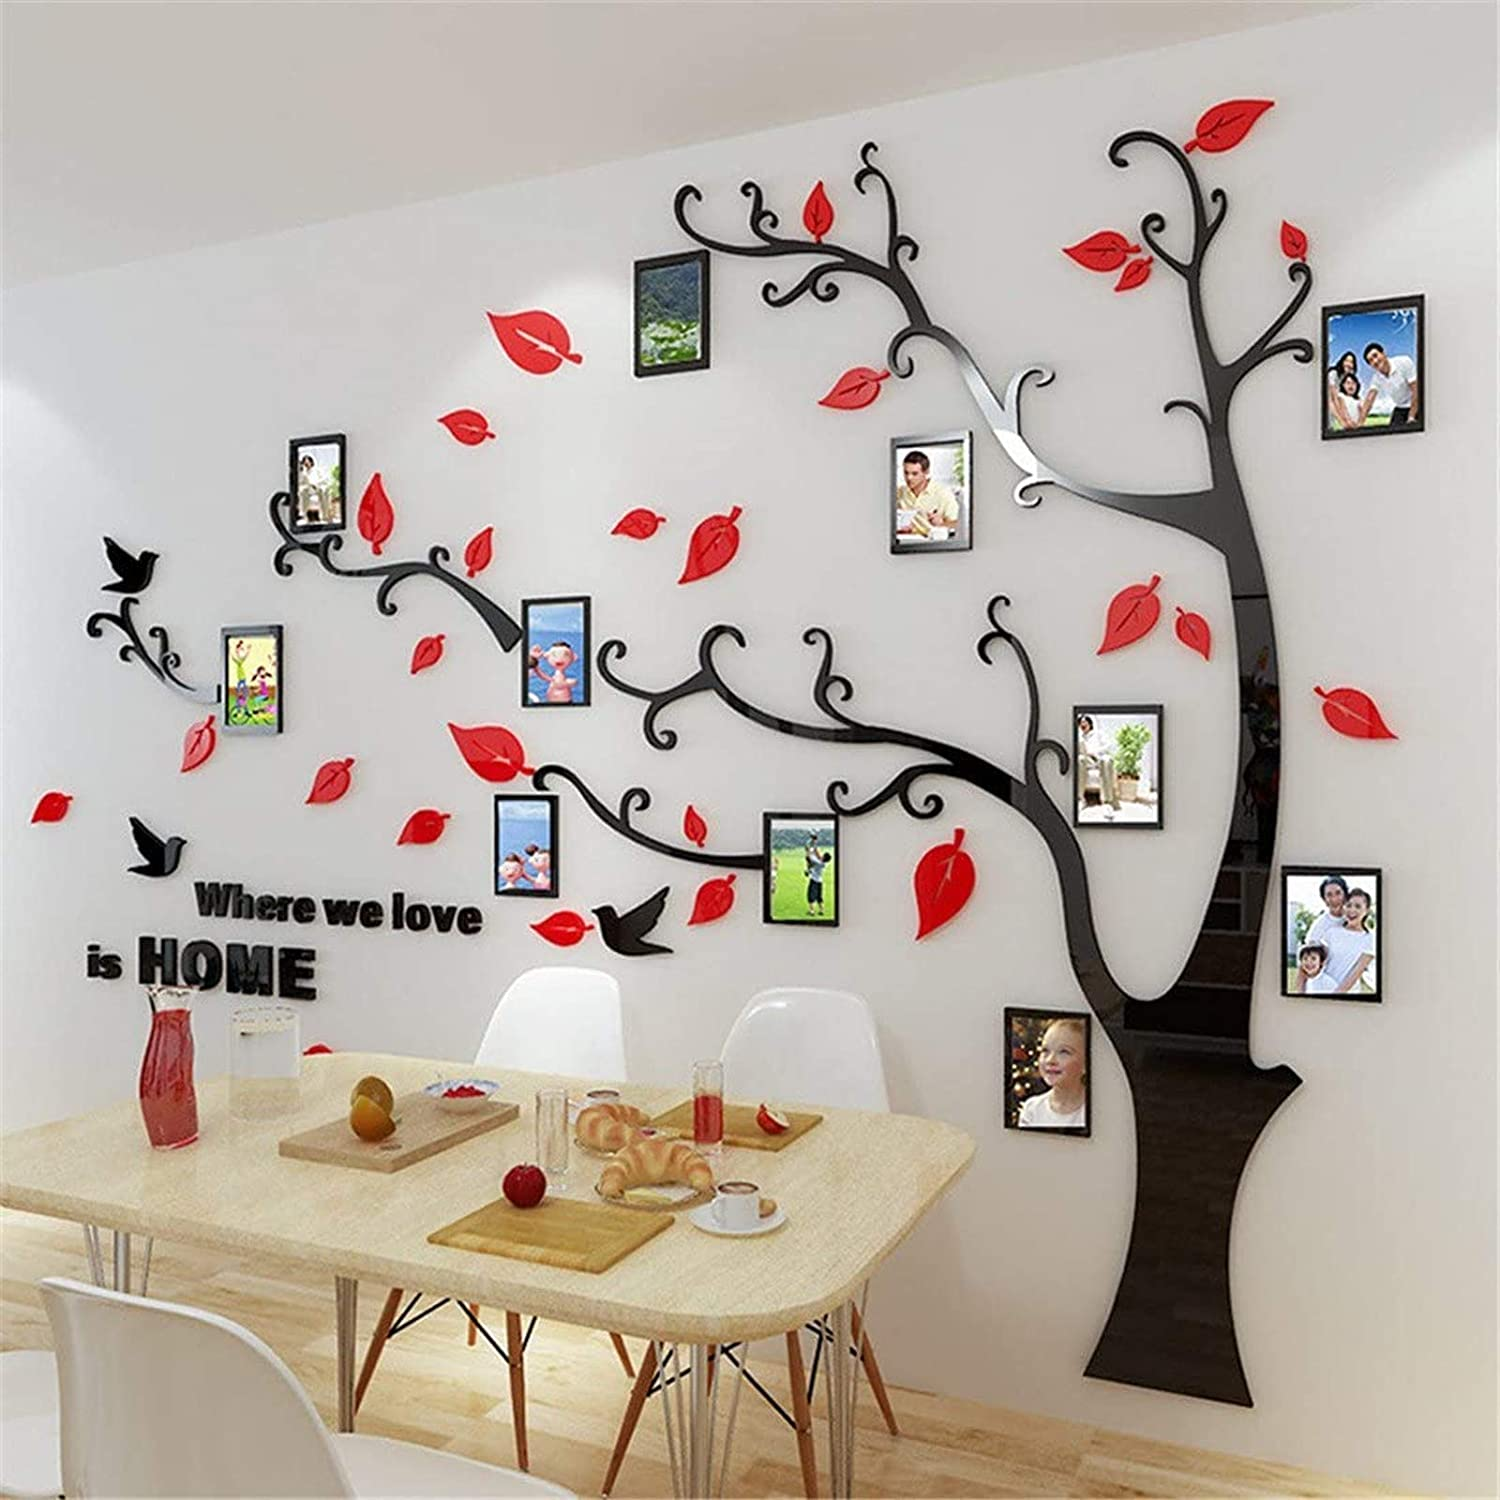 Beddinginn Tree Wall Sticker with Famliy Picture Frames DIY Branches Photo Gallery Frame Decor for Office and Home 118×72 Inches (Red Leaves,Right)